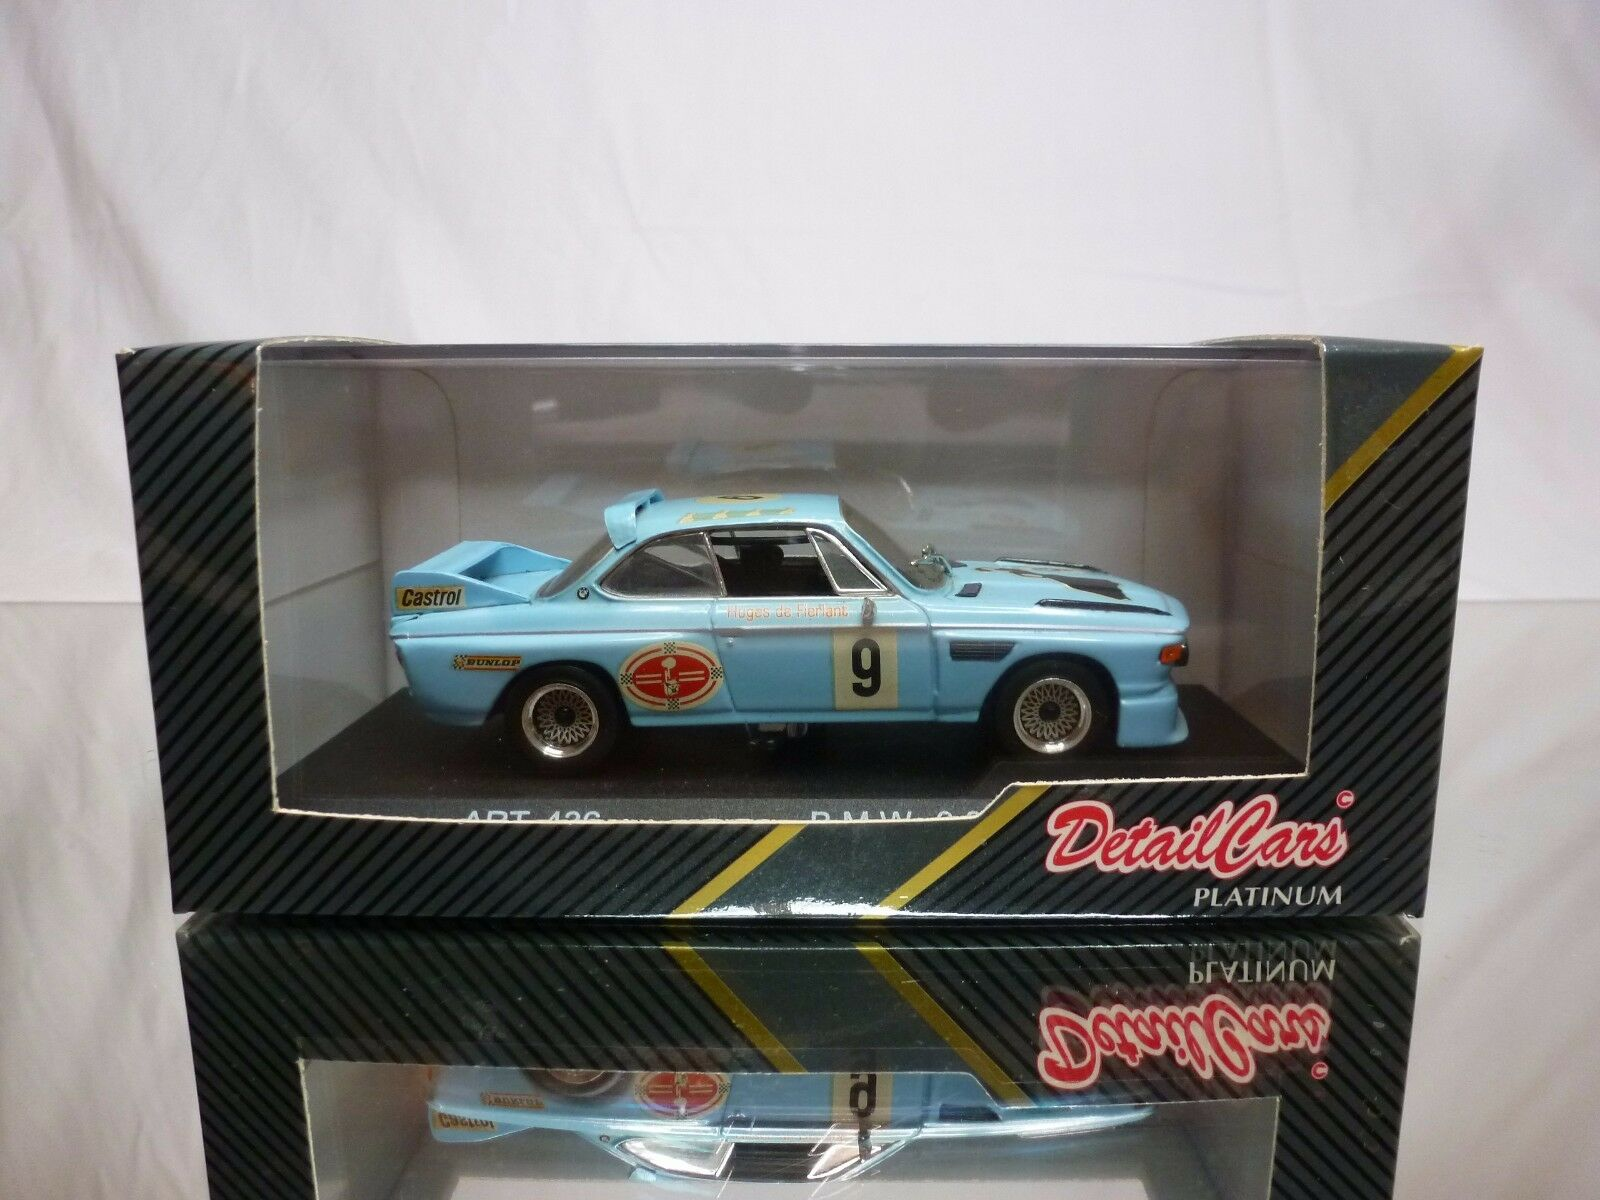 DETAIL CARS 436 BMW 3.0 CS 1977  - PALE blueeE  1 43 - GOOD CONDITION IN BOX